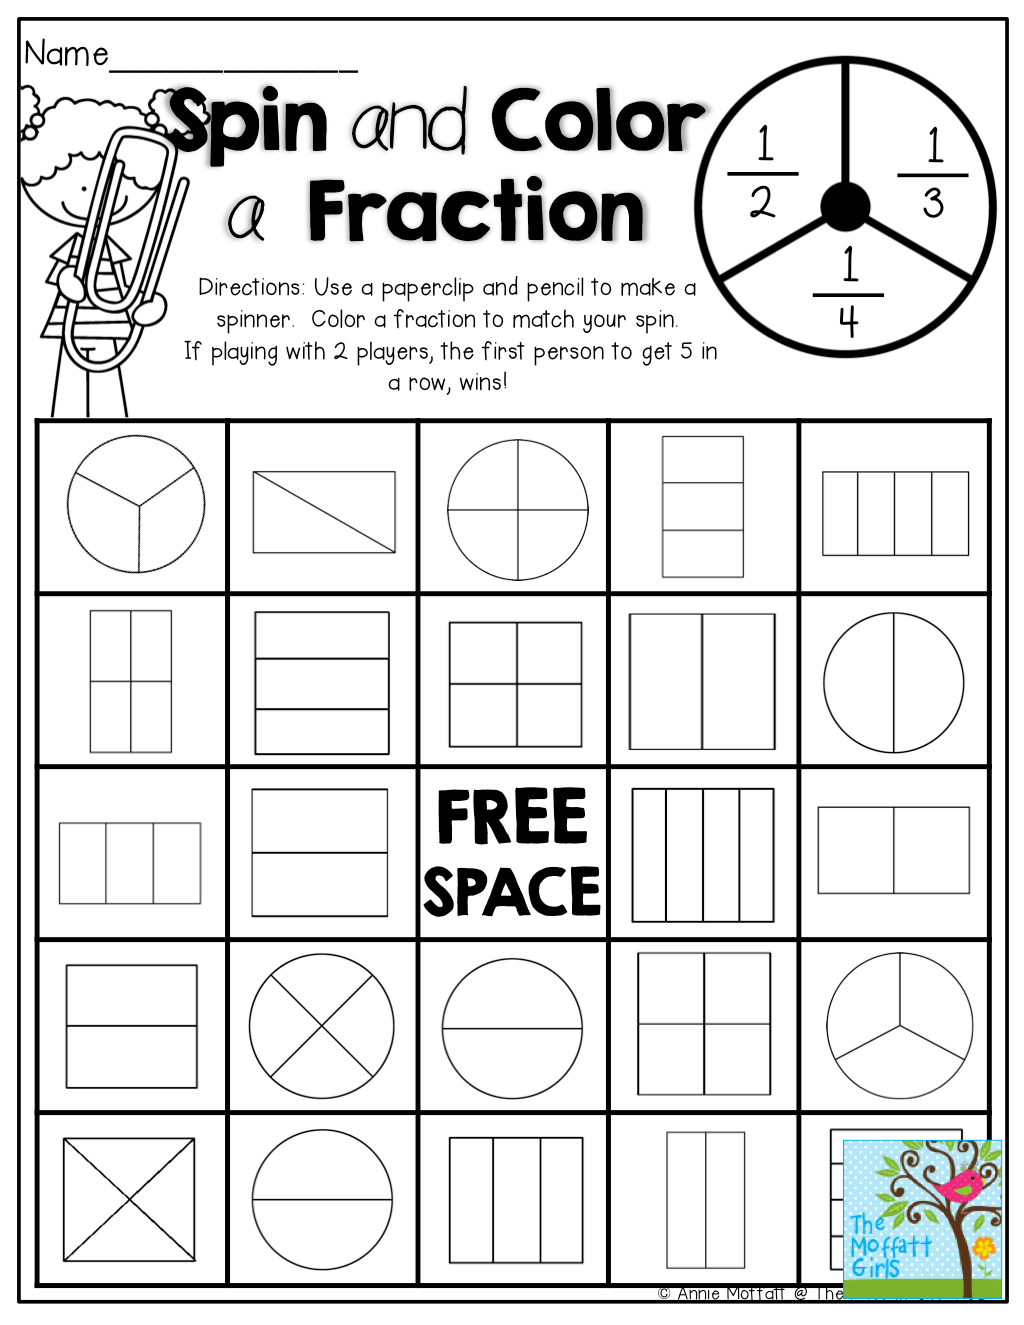 Fractions Coloring Worksheet For Halloween